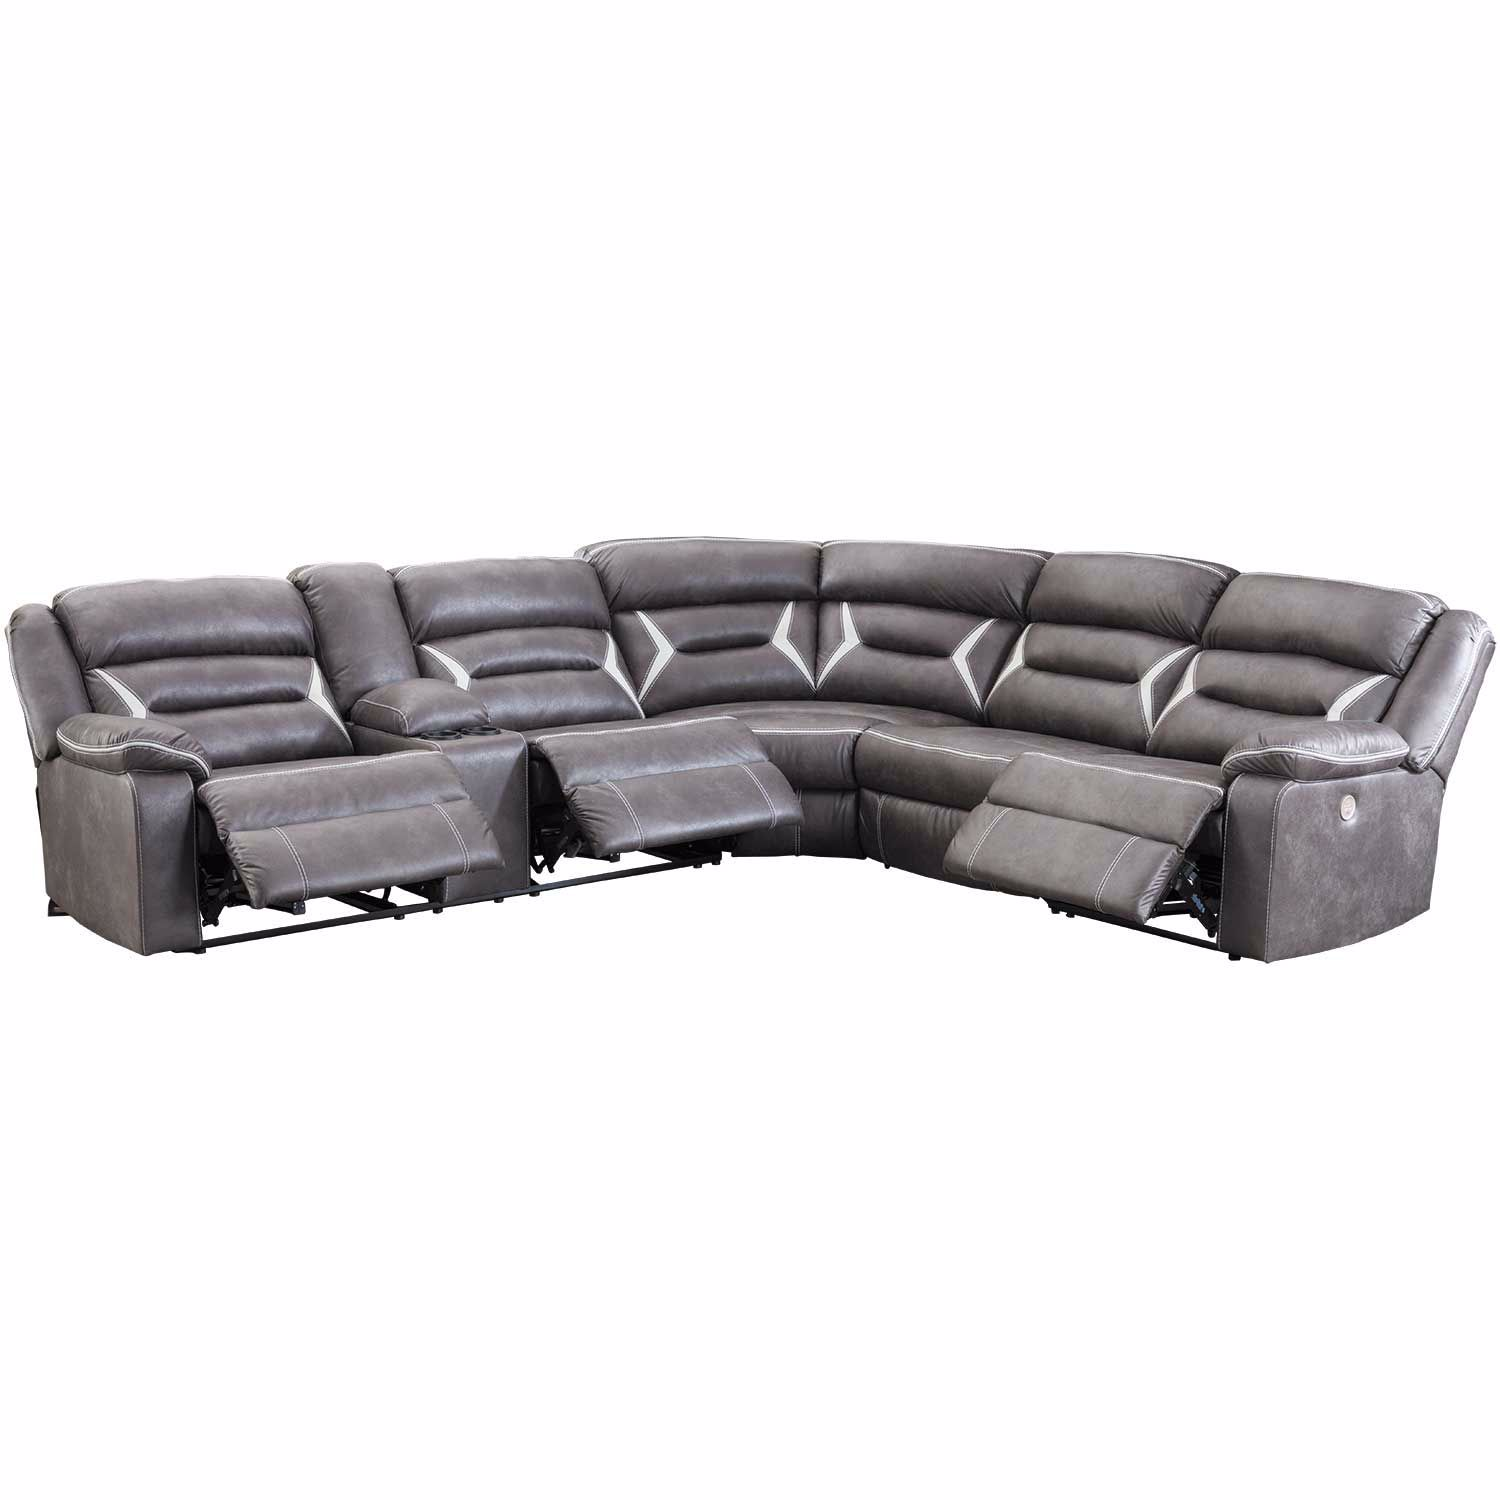 Picture of Kincord 4PC Power Recline Sectional with LAF Conso